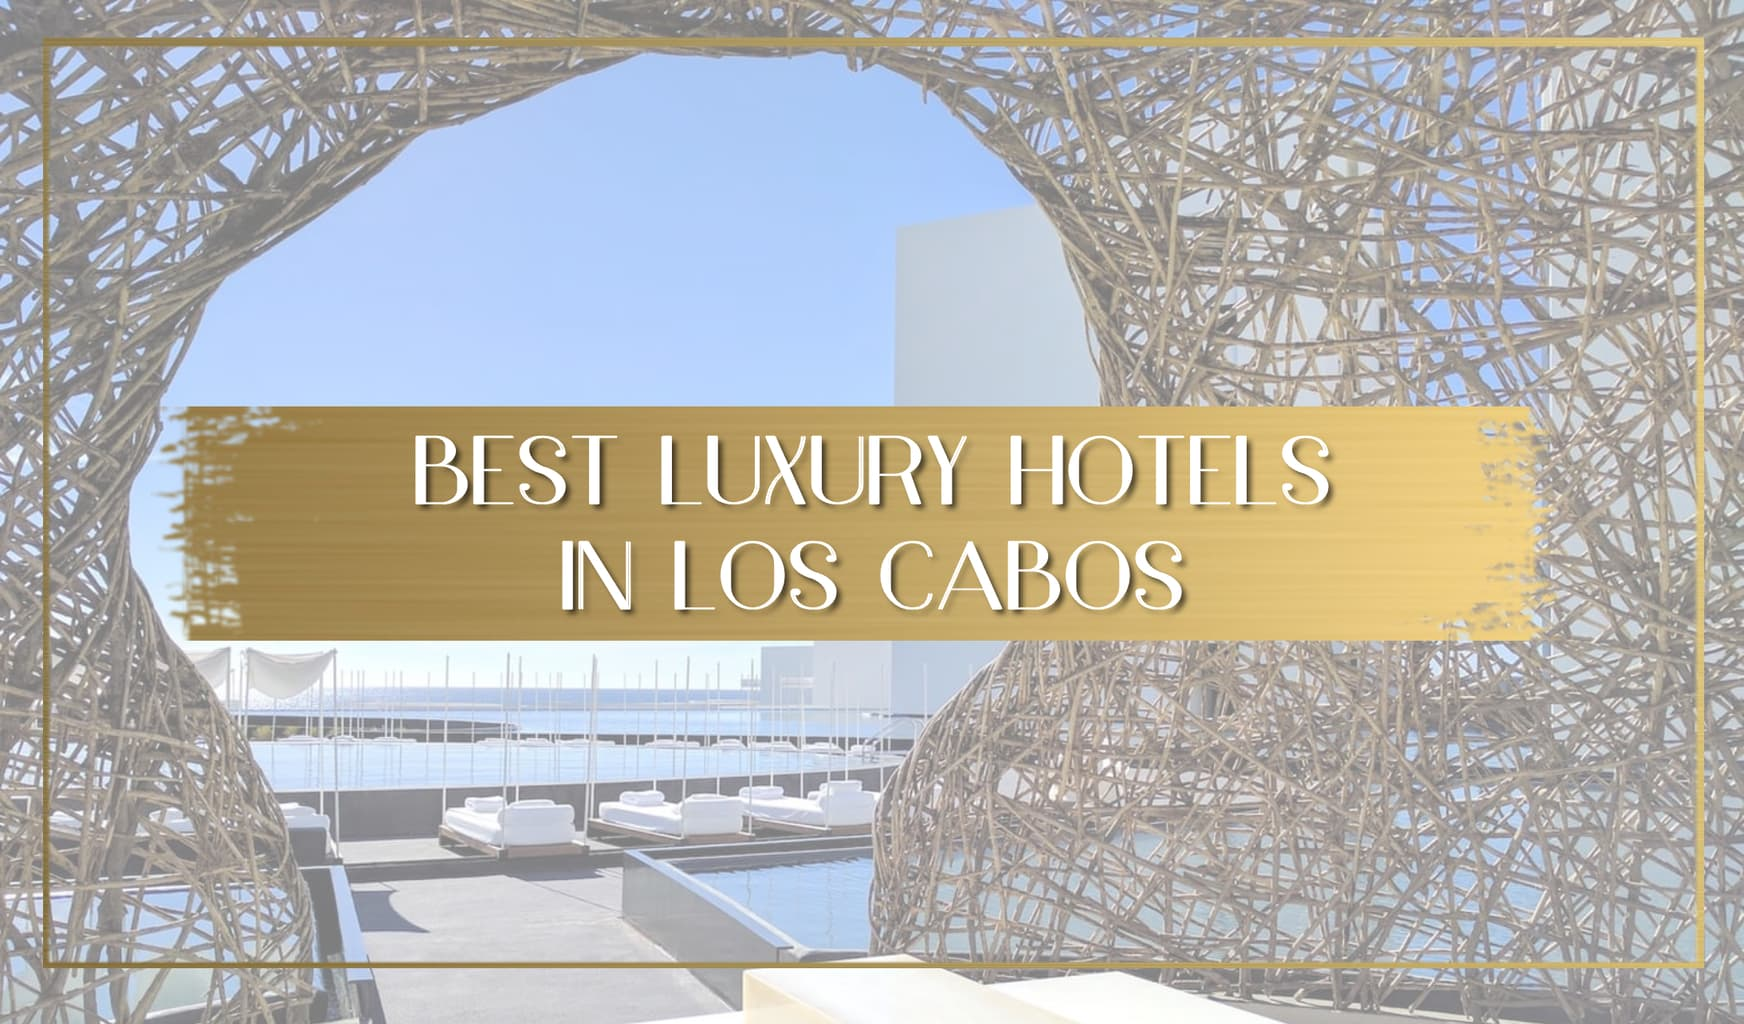 Best luxury hotels in Los Cabos main